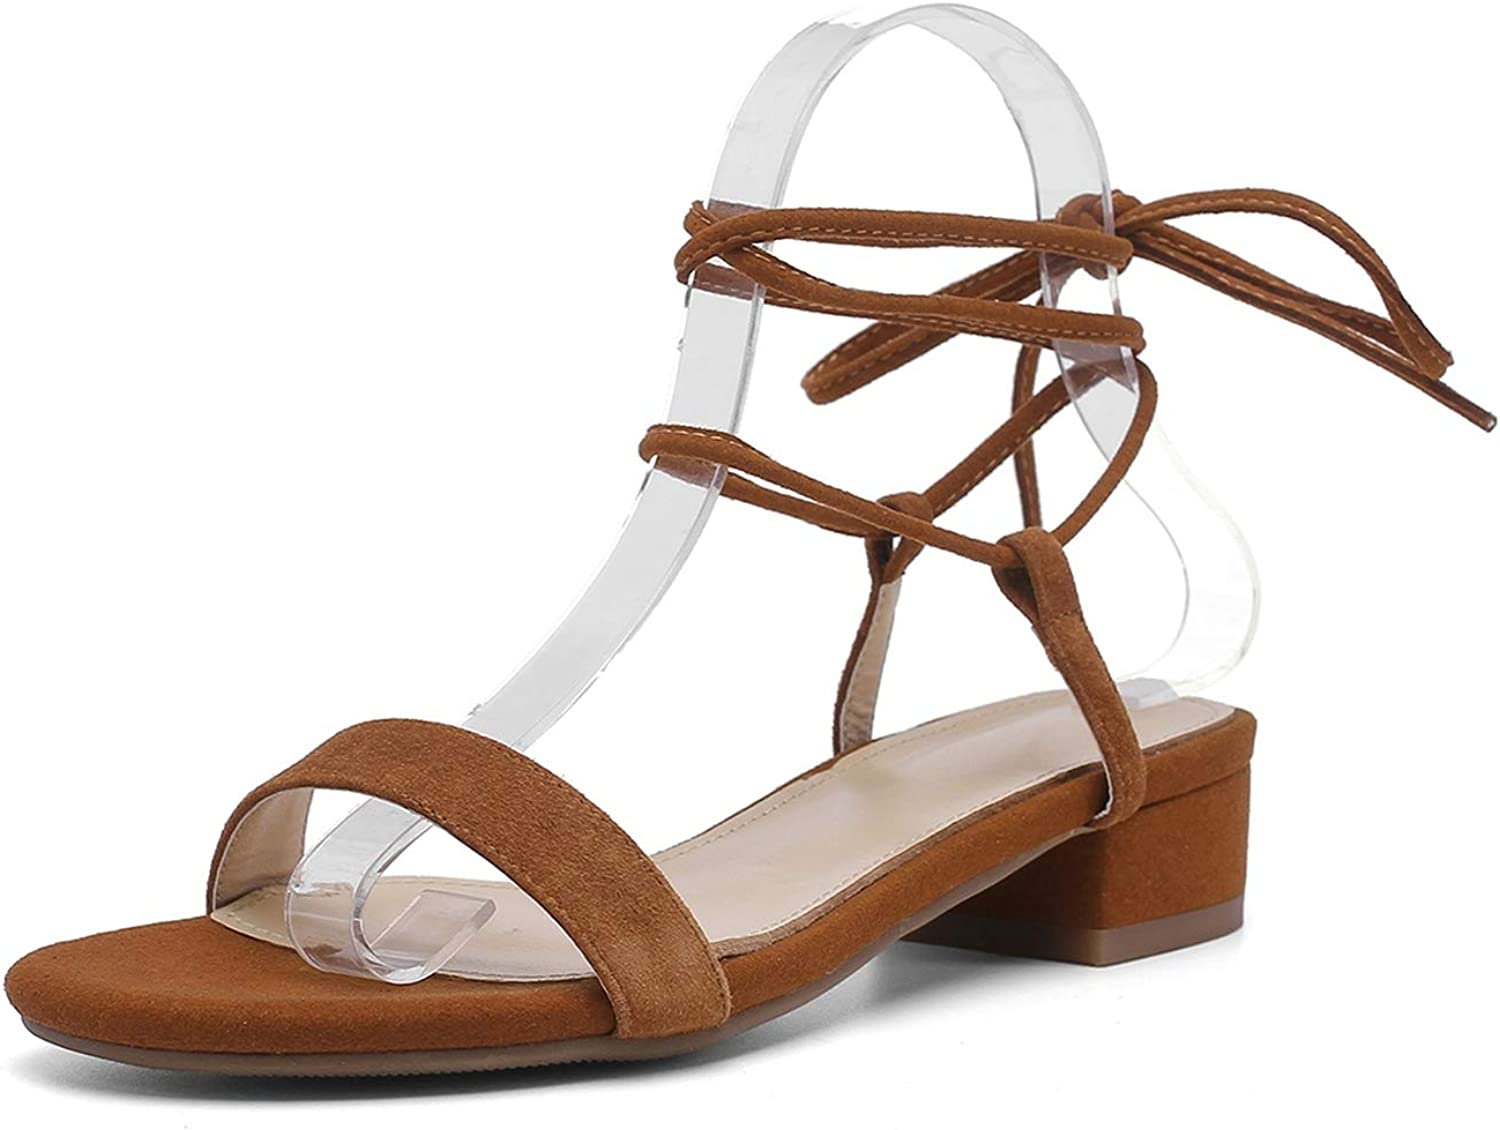 Pretty-Shop sandals Women Sandal Square High Heel Kid Suede Square Open-Toed Lace Up,